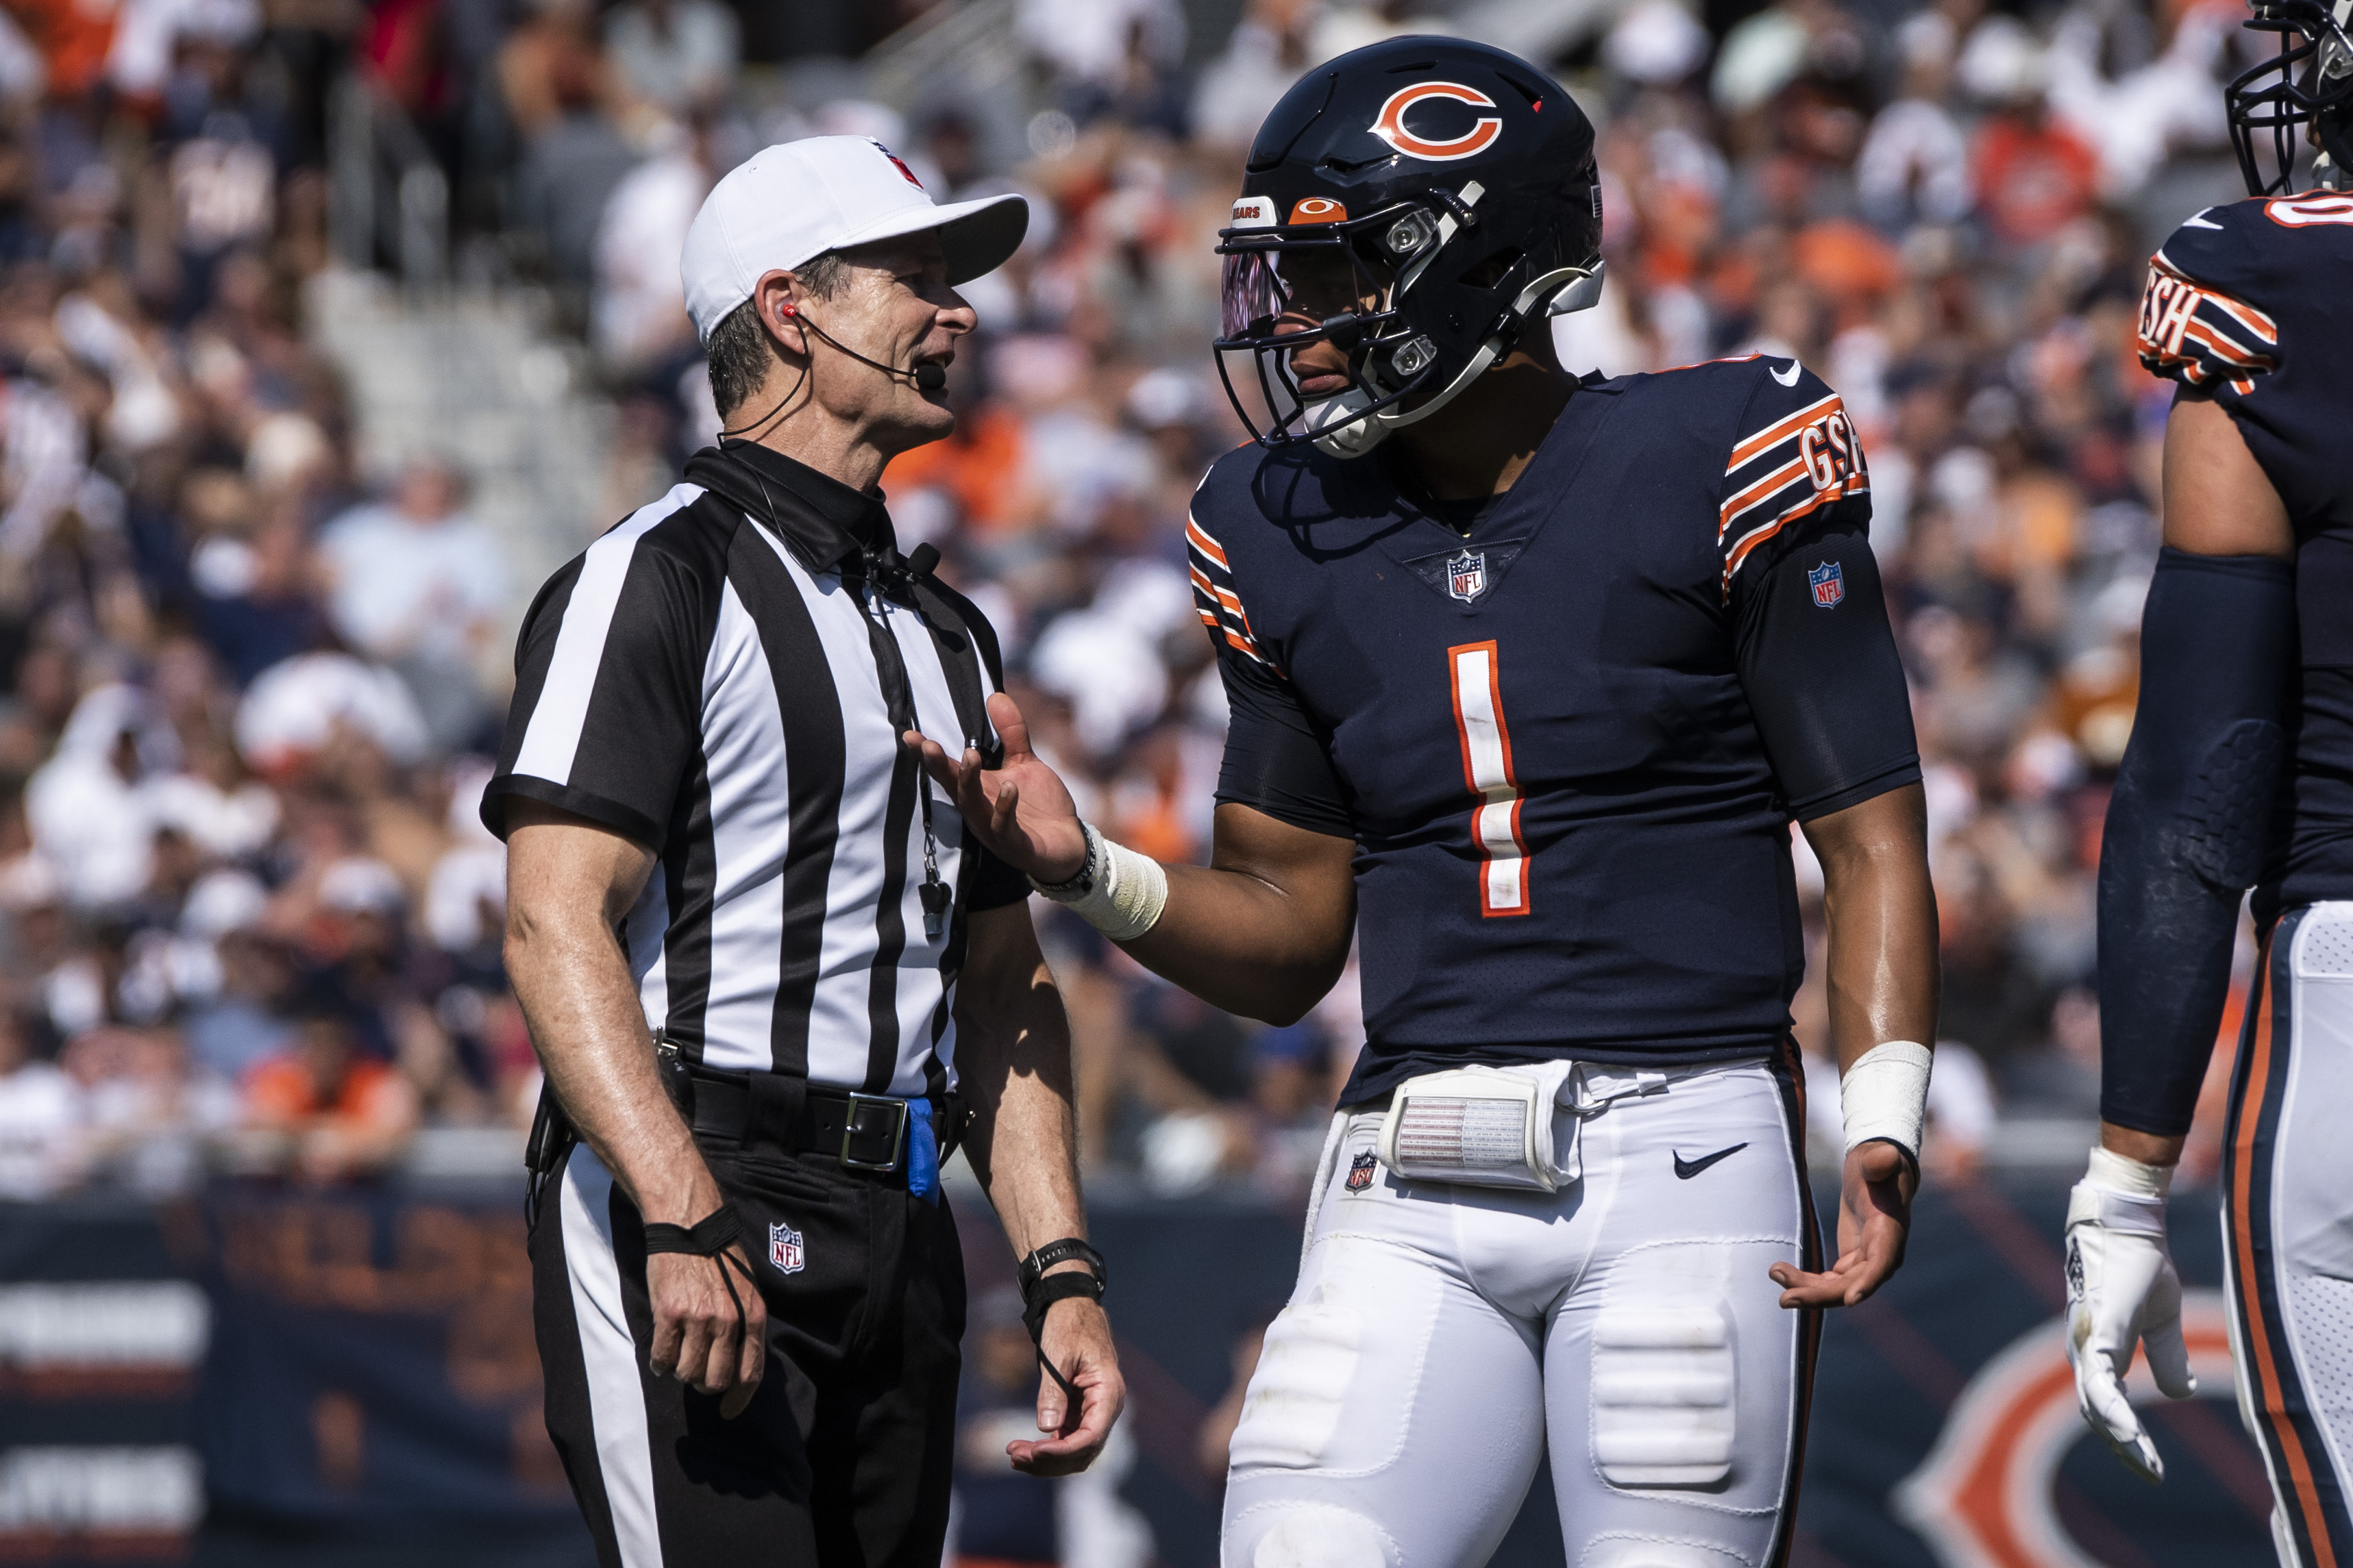 Bears quarterback Justin Fields talks to an official during Sunday's win against the Bengals.